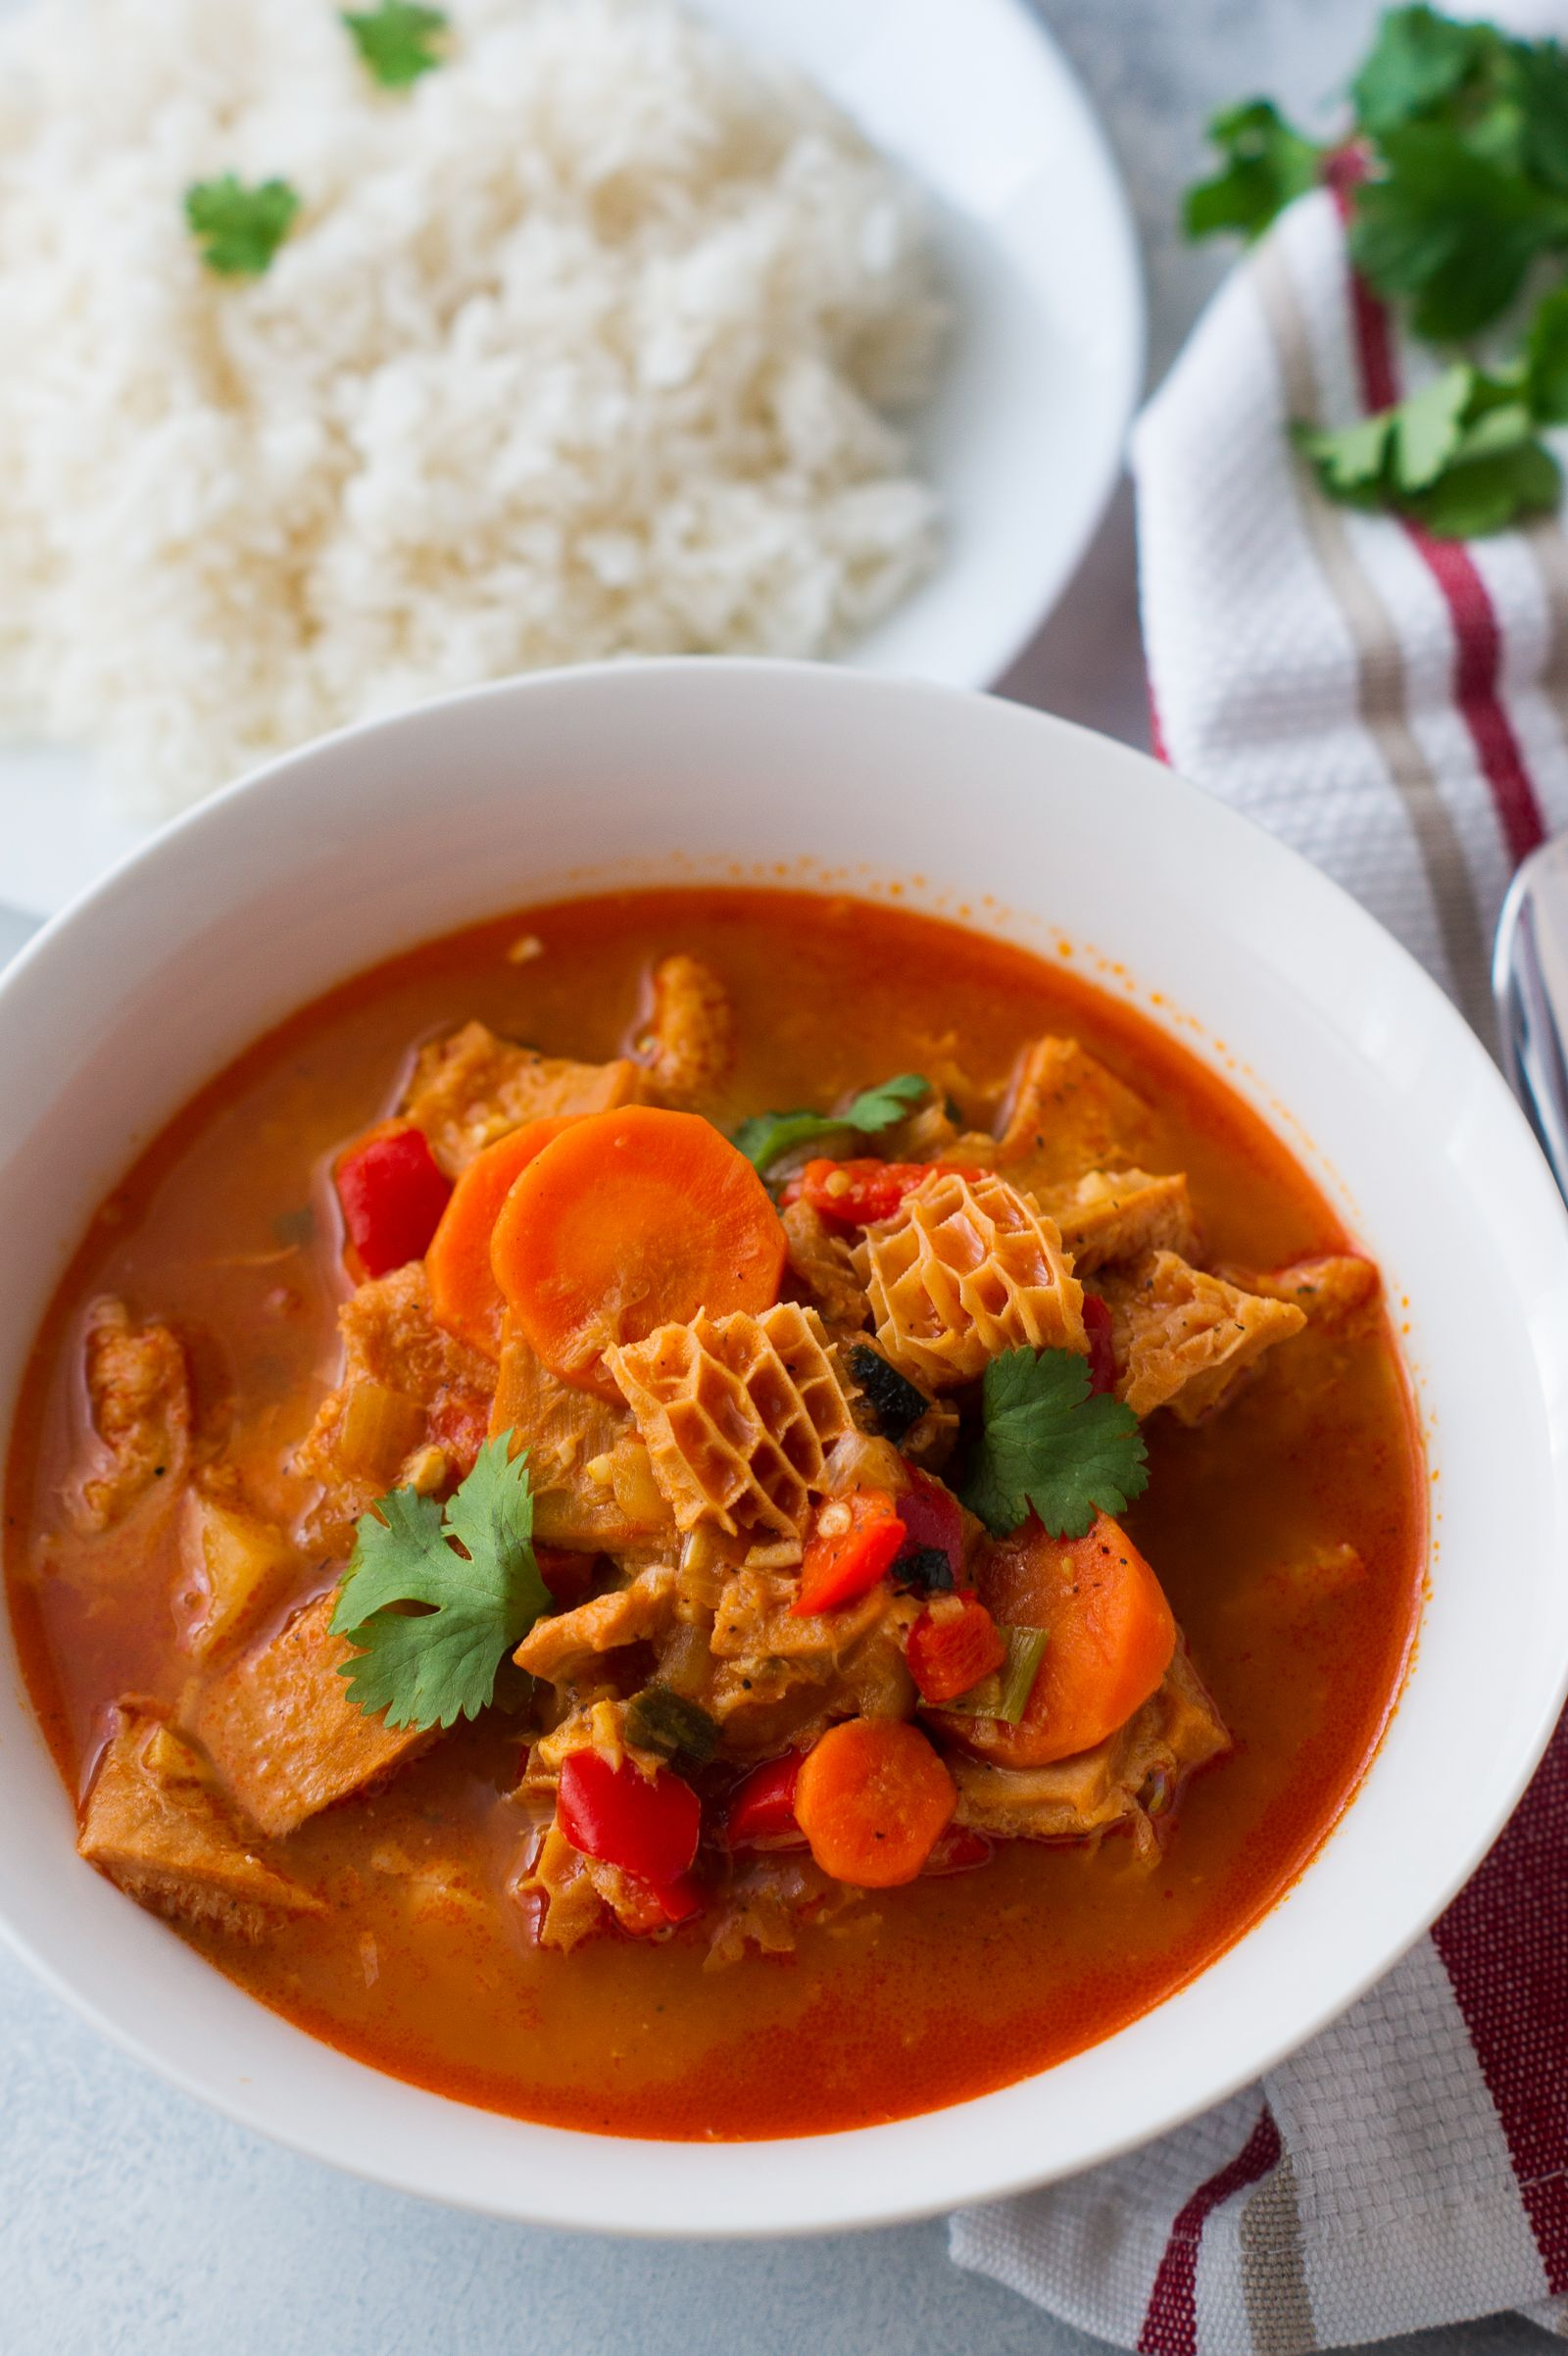 Dominican Style Tripe Stew Mondongo A Warm Comforting Stew Made